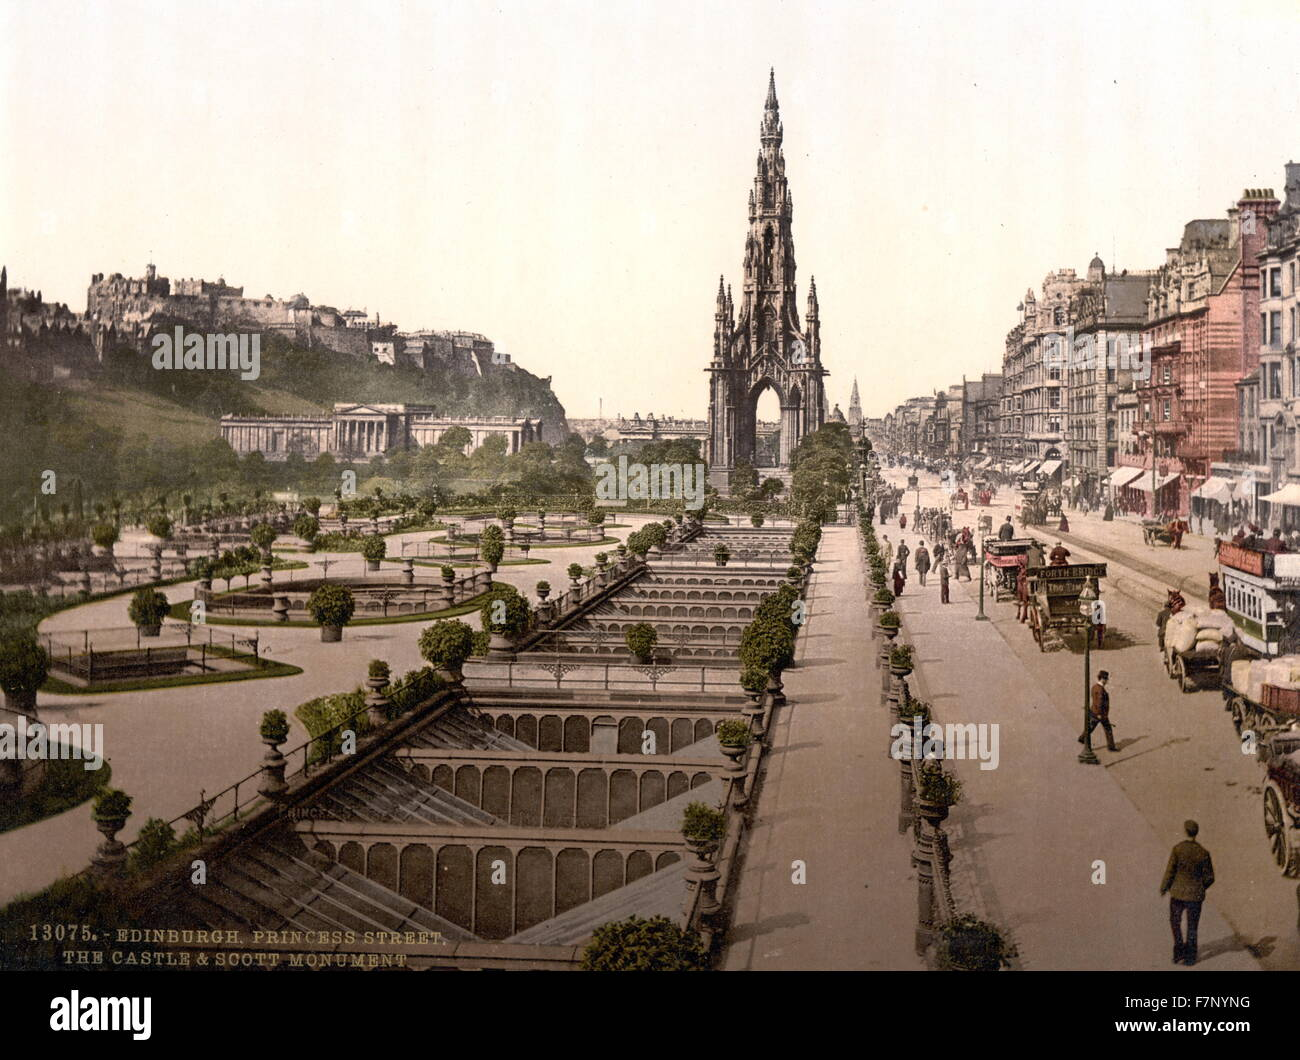 Princes Street, the castle, and Scott Monument, Edinburgh, Scotland 1890 - Stock Image